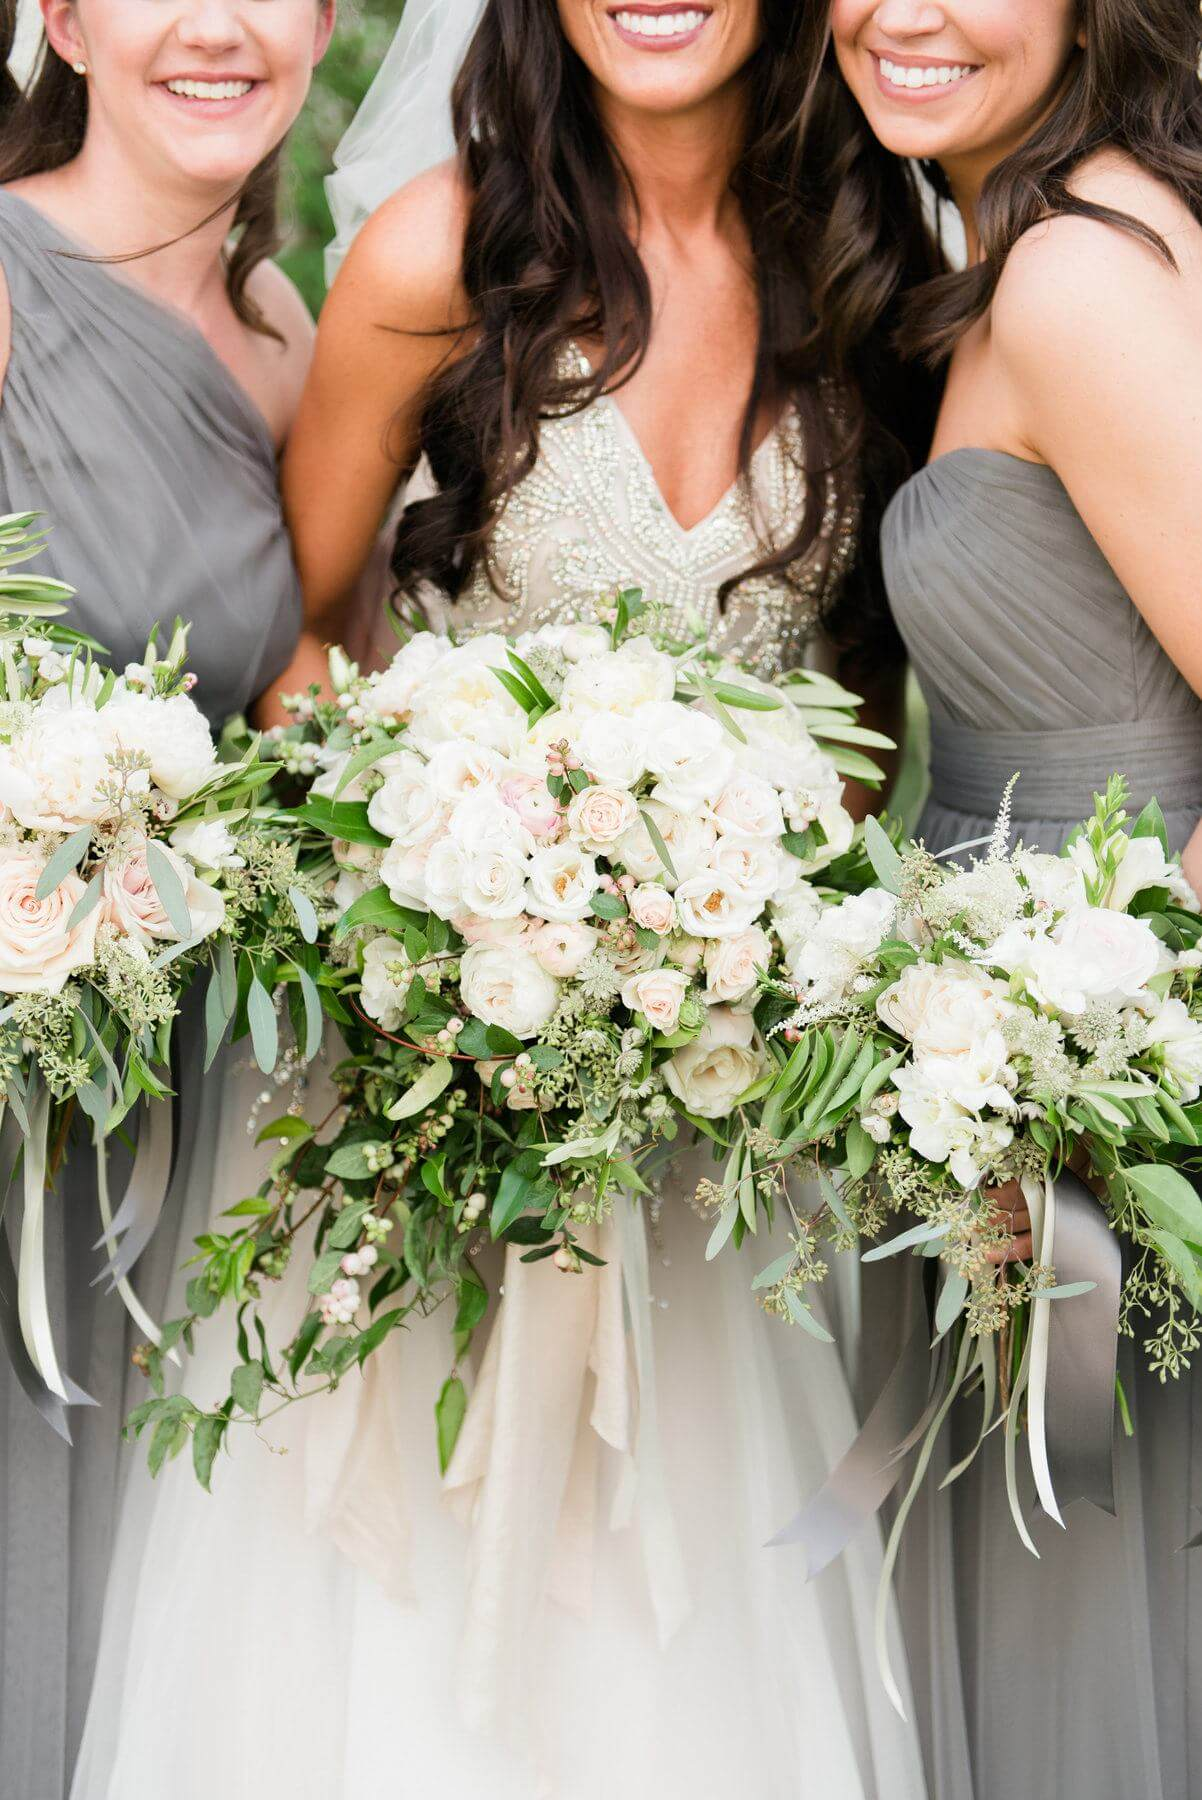 HotHouse Design Studio created these beautiful neutral cream and blush bouquetsteeming with greenery and soft flowing ribbons from Silk & Willow for a truly stunning bridal accessory.